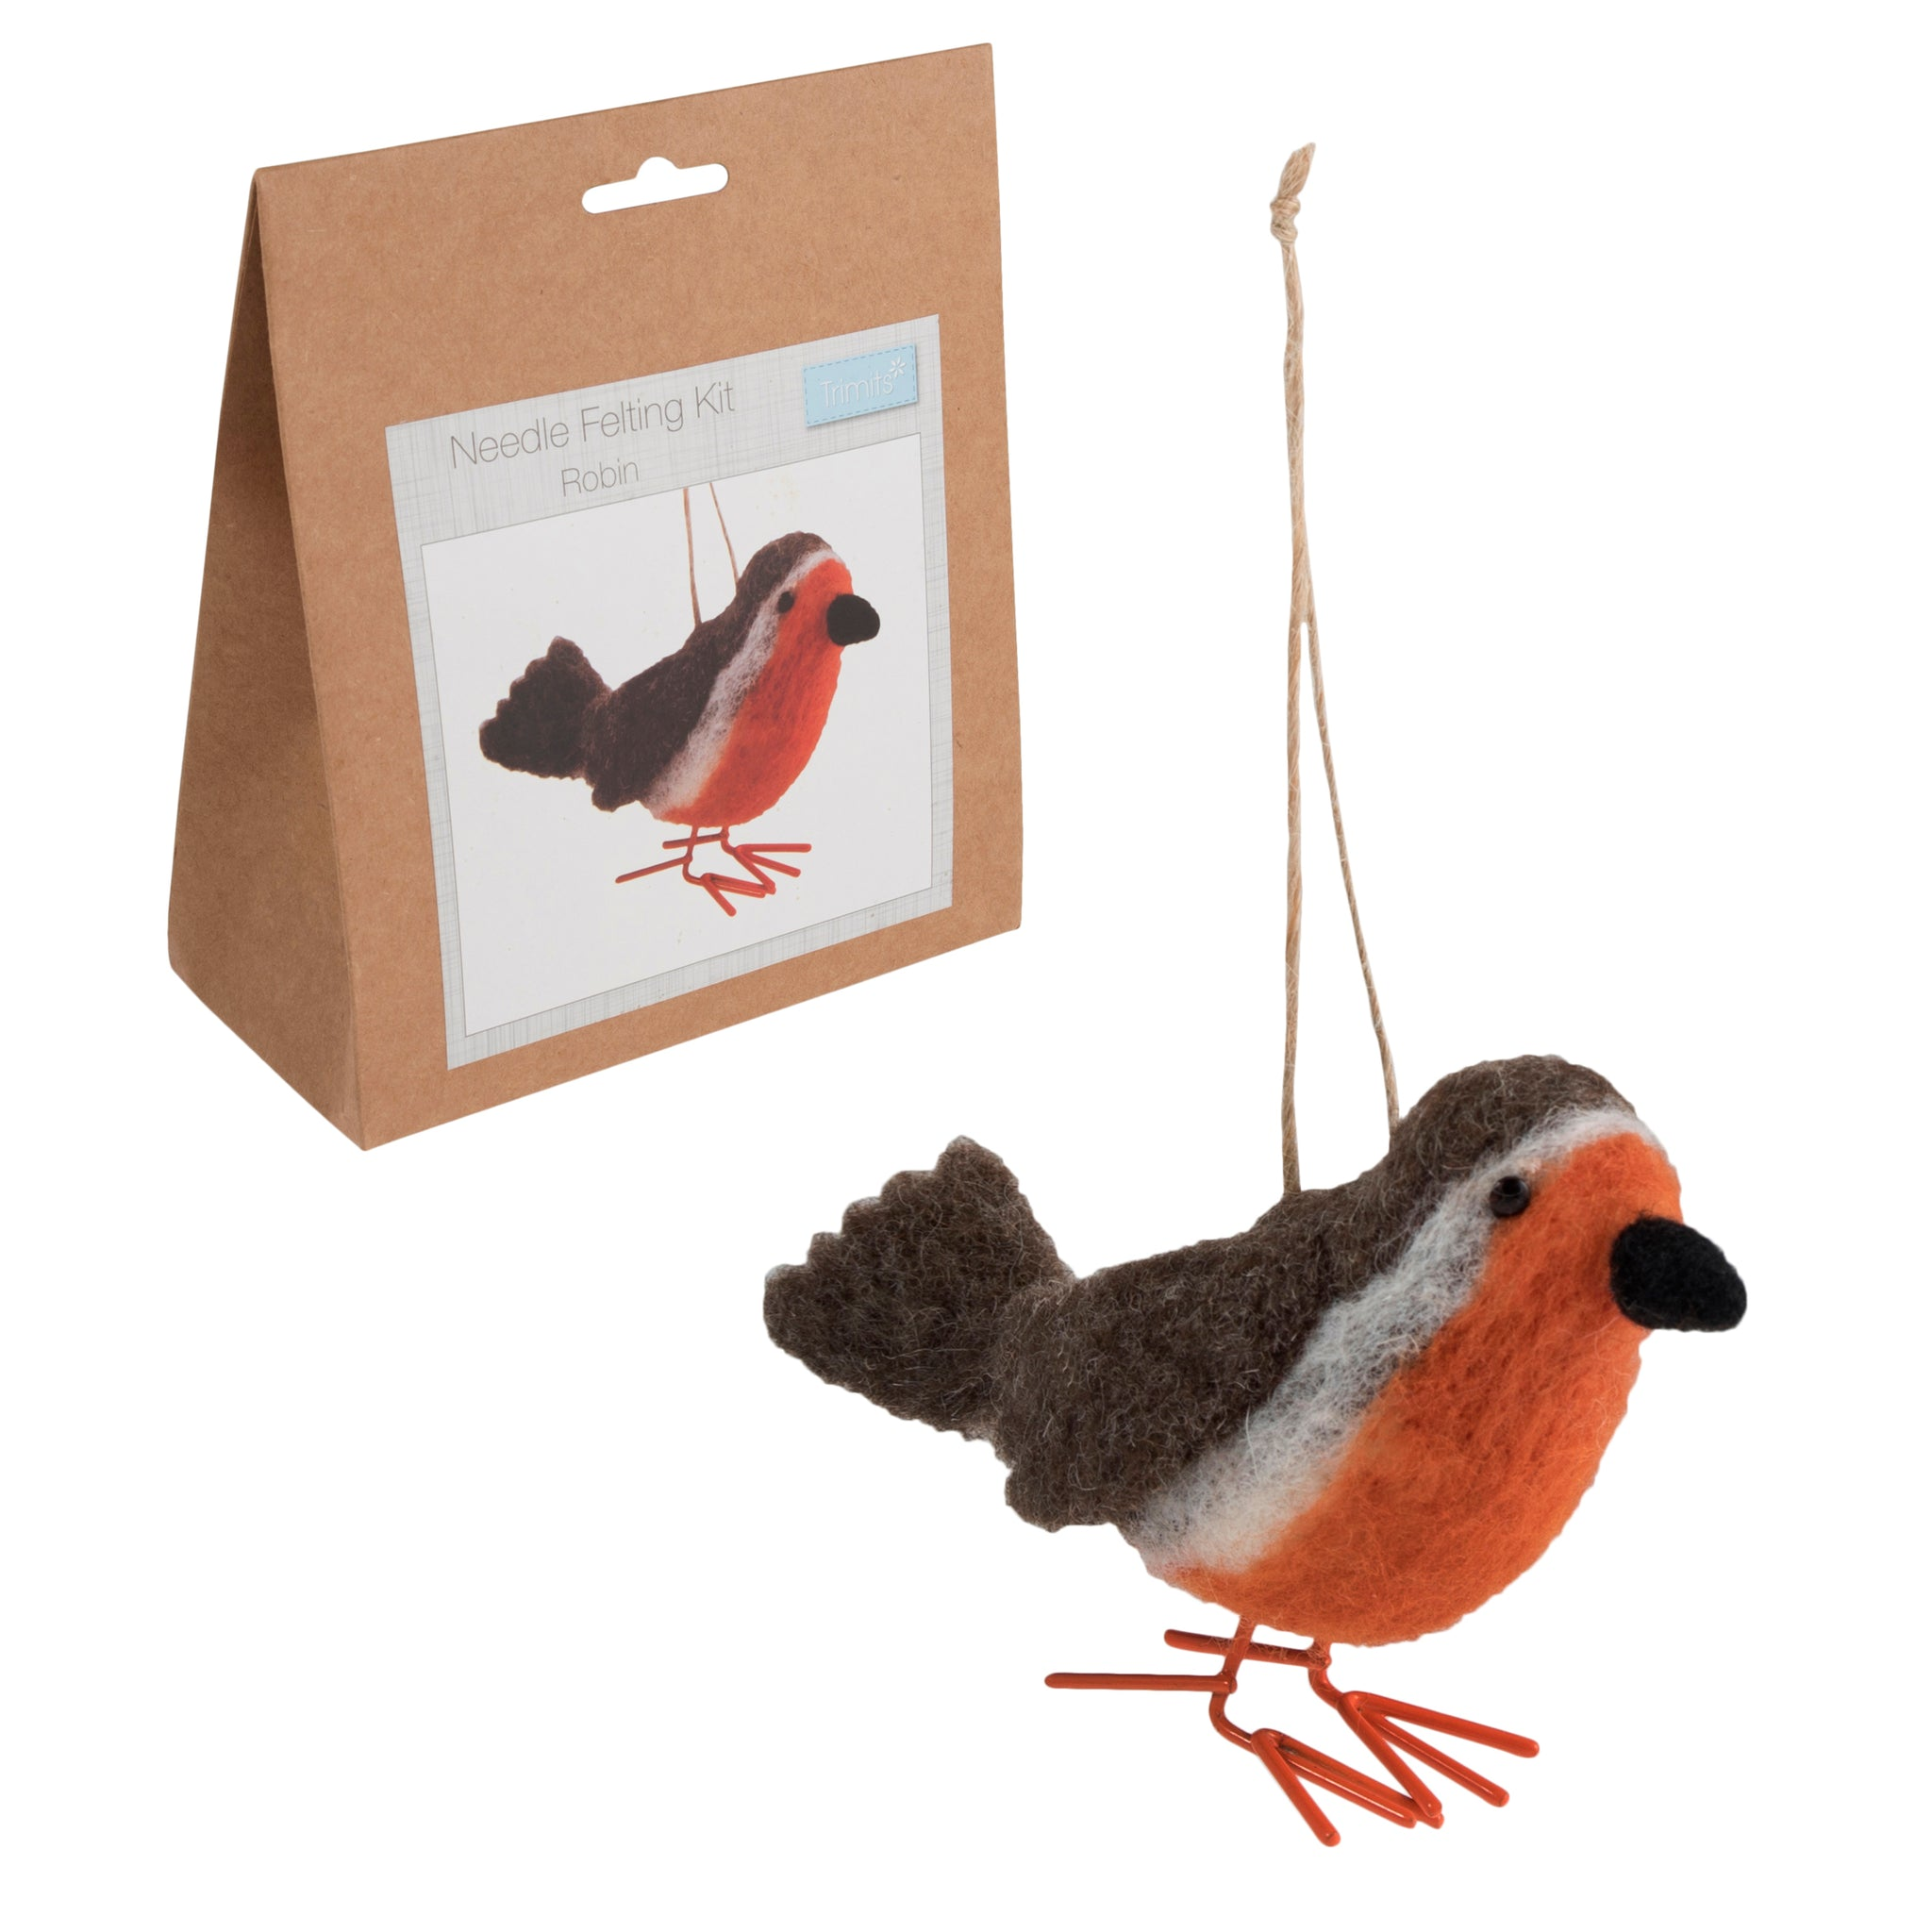 Needle Felting Robin Kit, Make Your Own Robin, TCK012 - Fabric and Ribbon